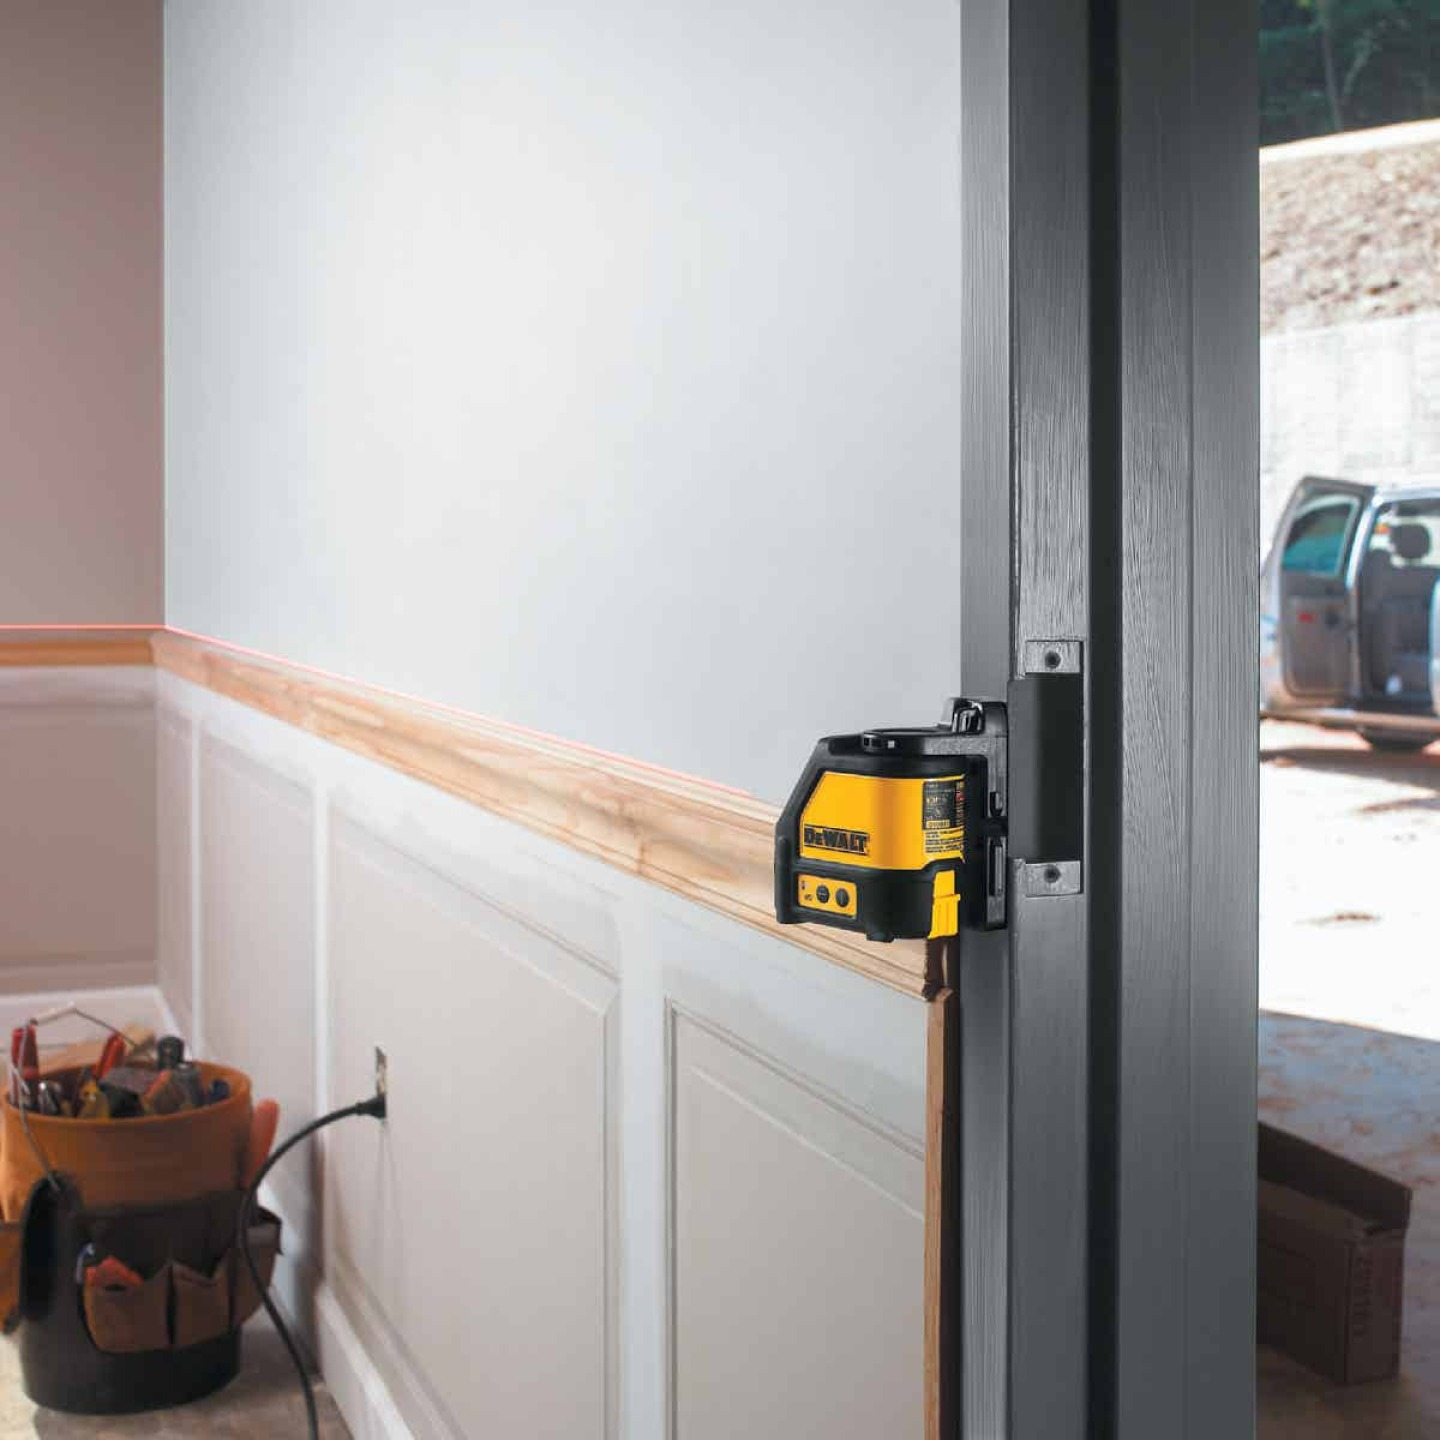 DeWalt 100 Ft. Self-Leveling Cross-Line Laser Level Image 6